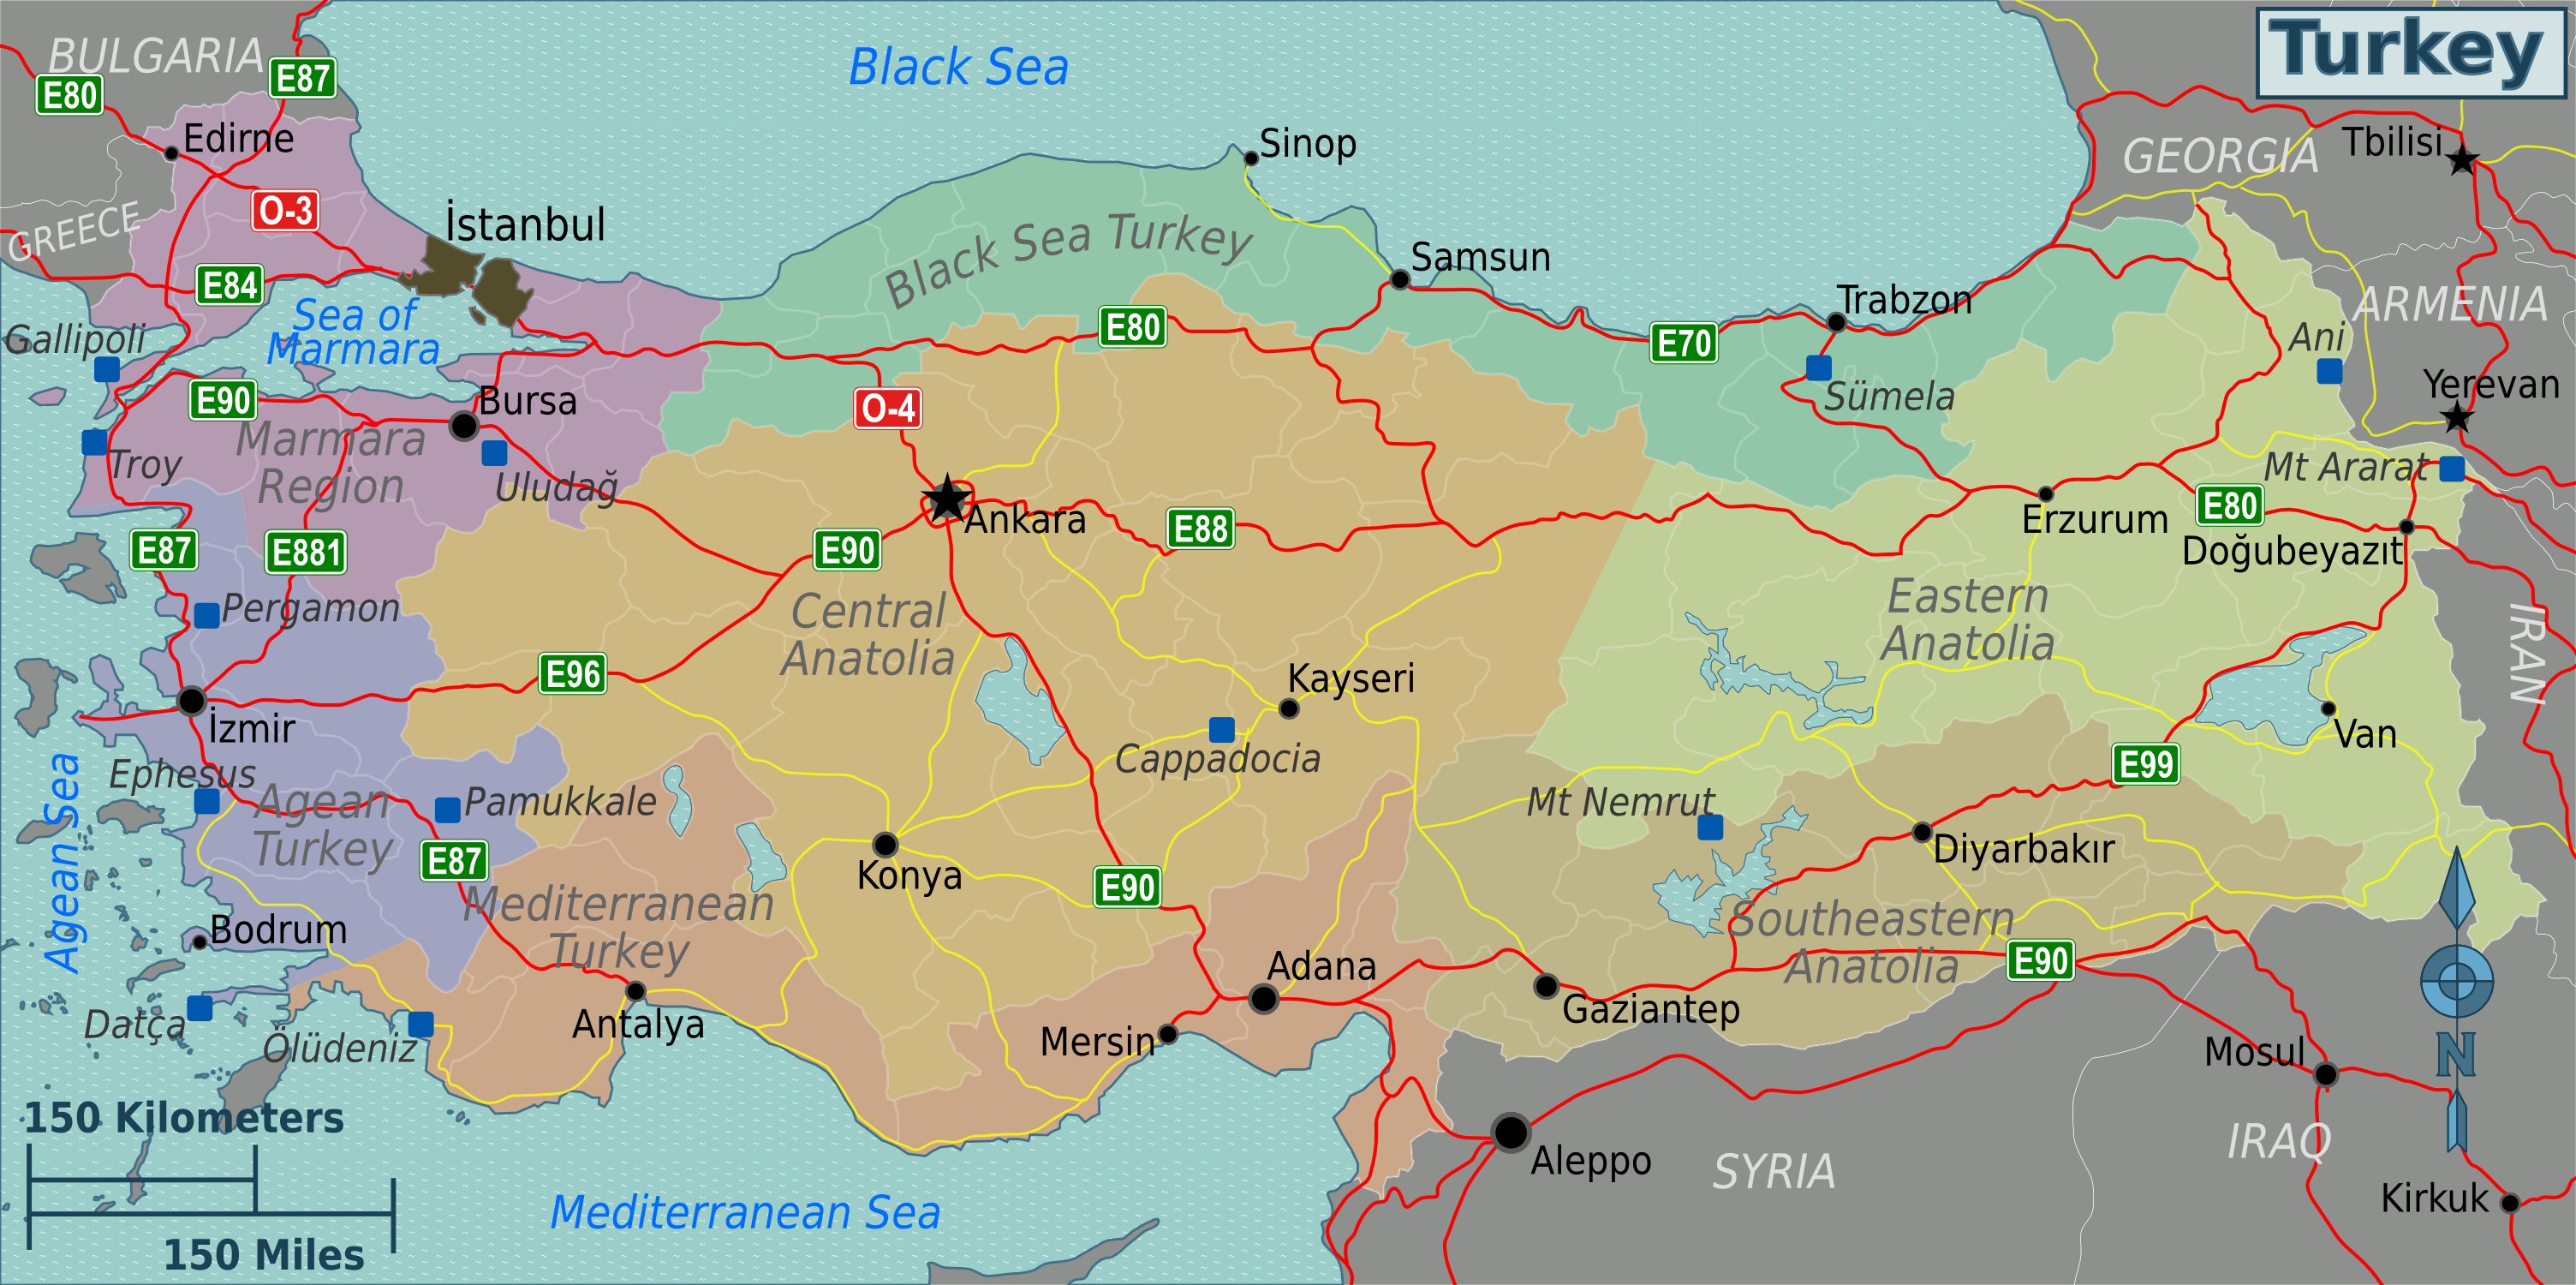 https://upload.wikimedia.org/wikipedia/commons/c/ce/Turkey_regions_map.png